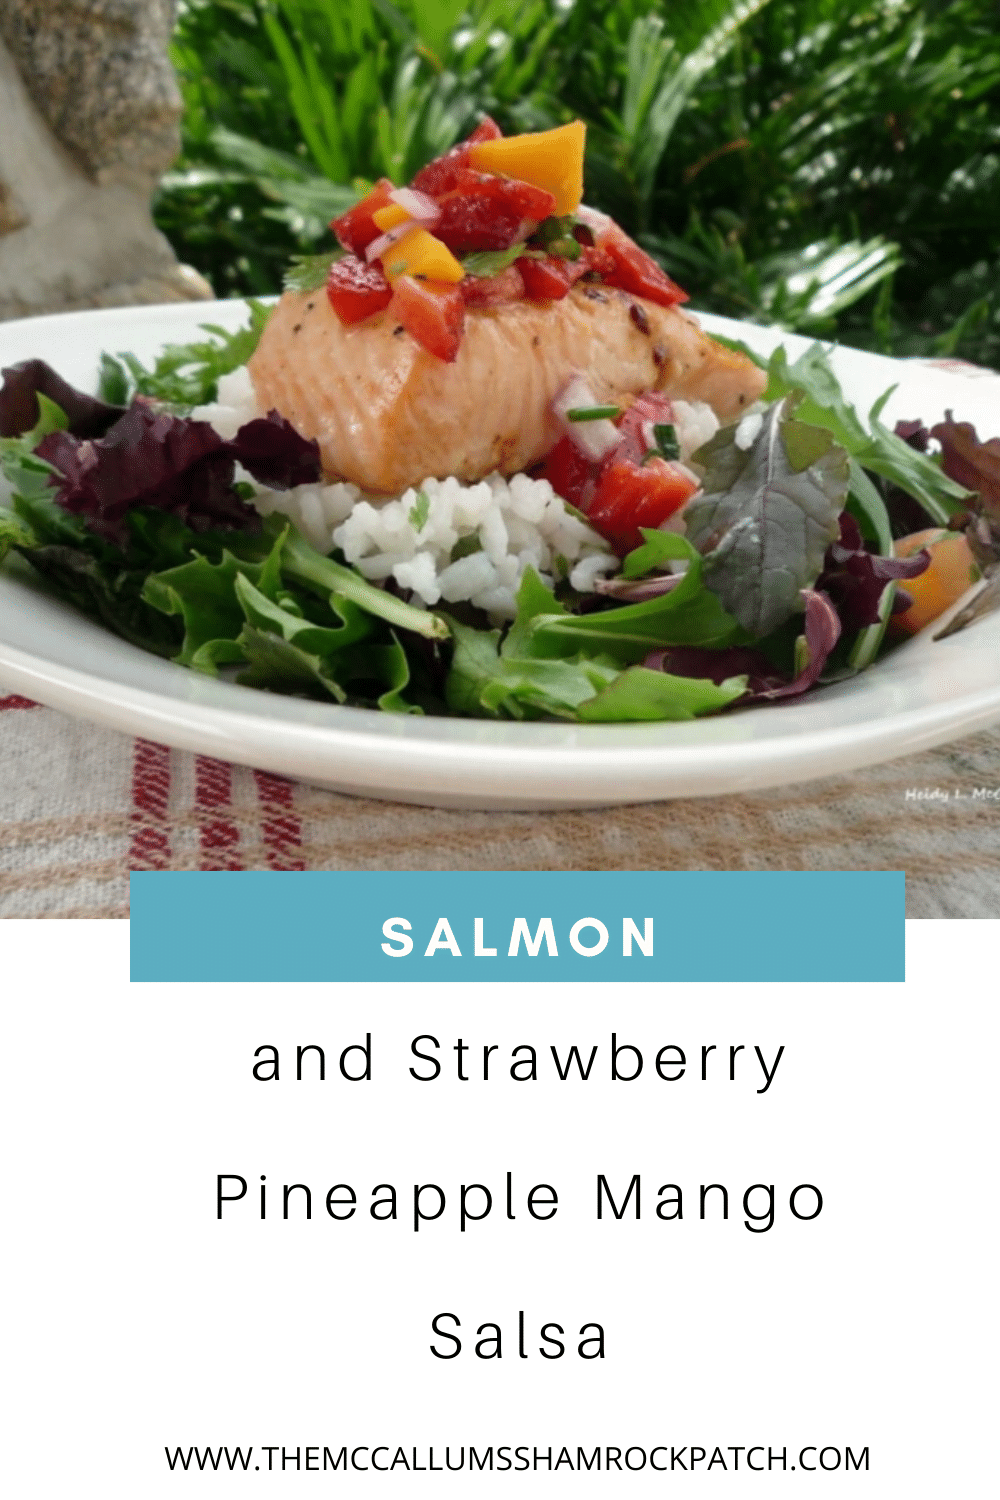 Salmon with Strawberry Pineapple Mango Salsa